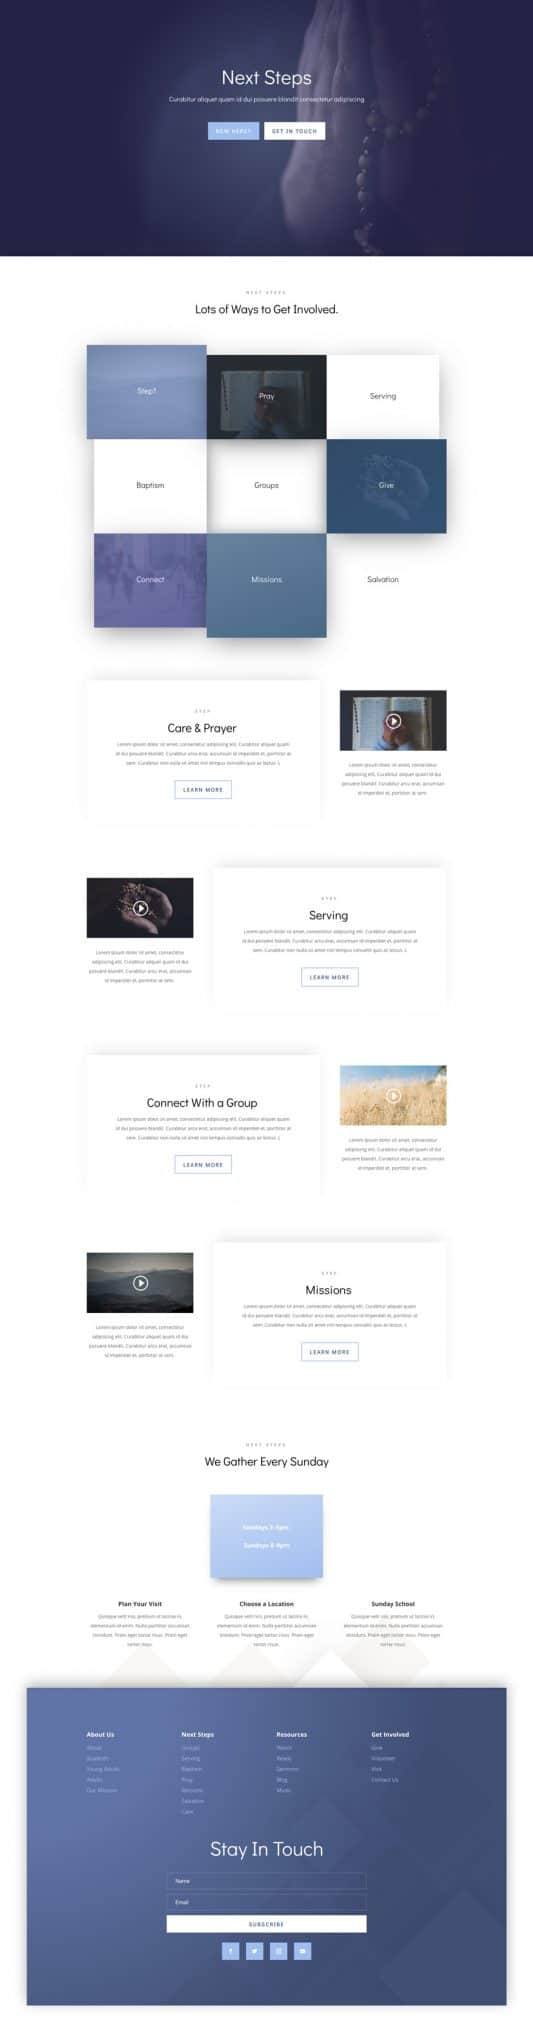 Church Web Design 5